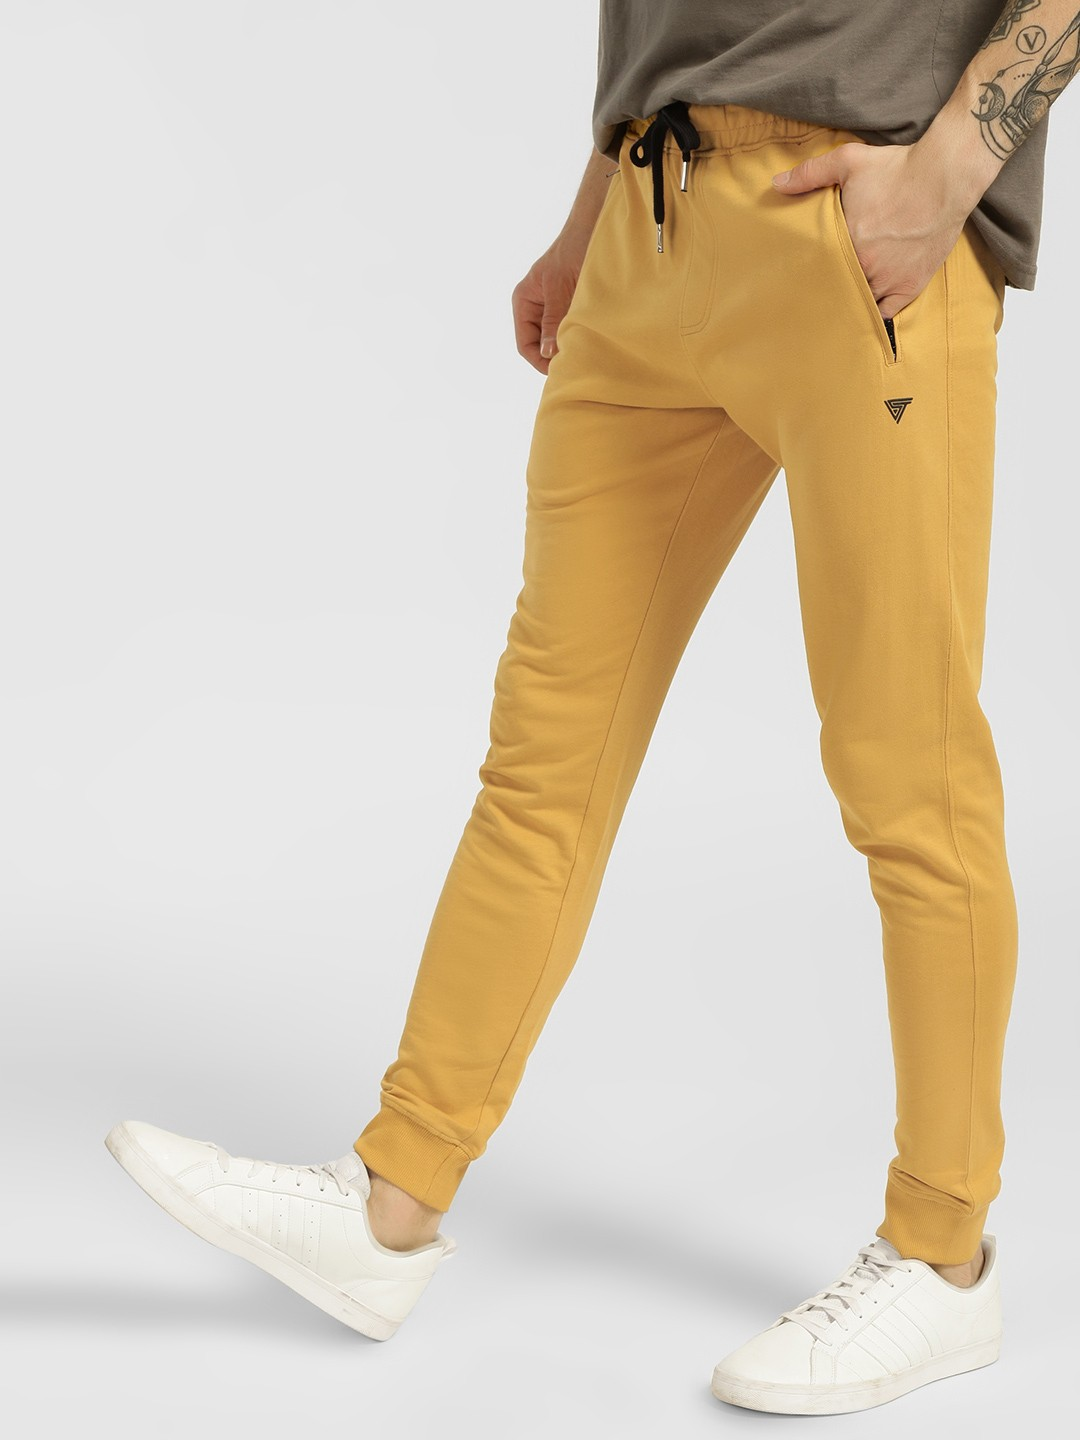 Blue Saint Gold Basic Slim Fit Joggers 1